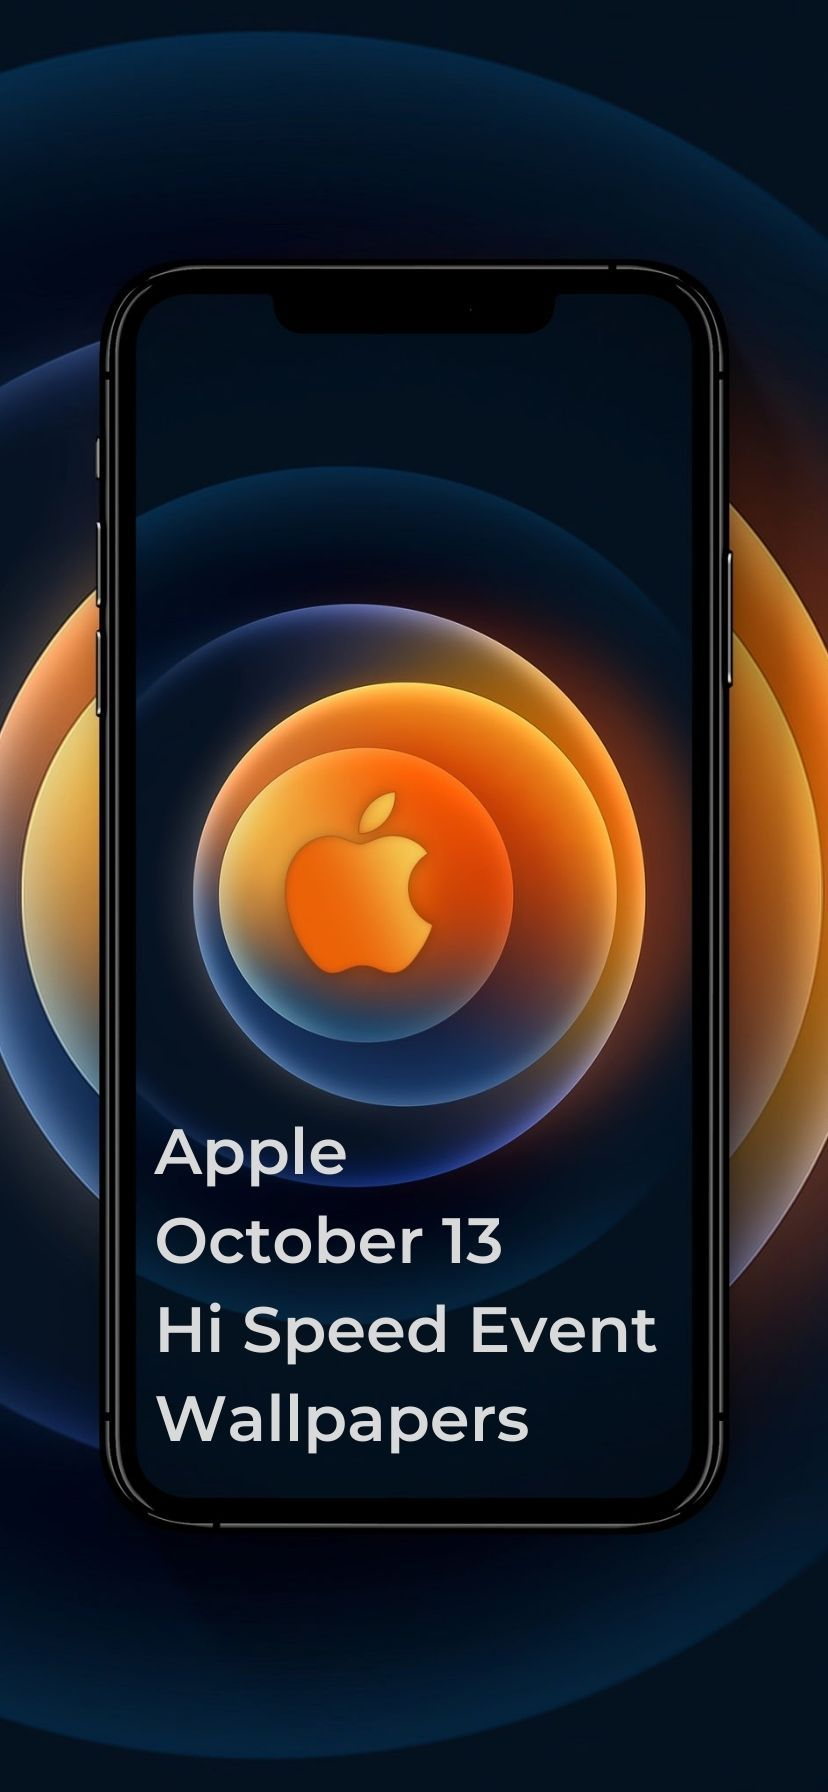 Download Apple High Speed Event Wallpapers Apple Wallpaper Iphone Abstract Iphone Wallpaper Wallpaper